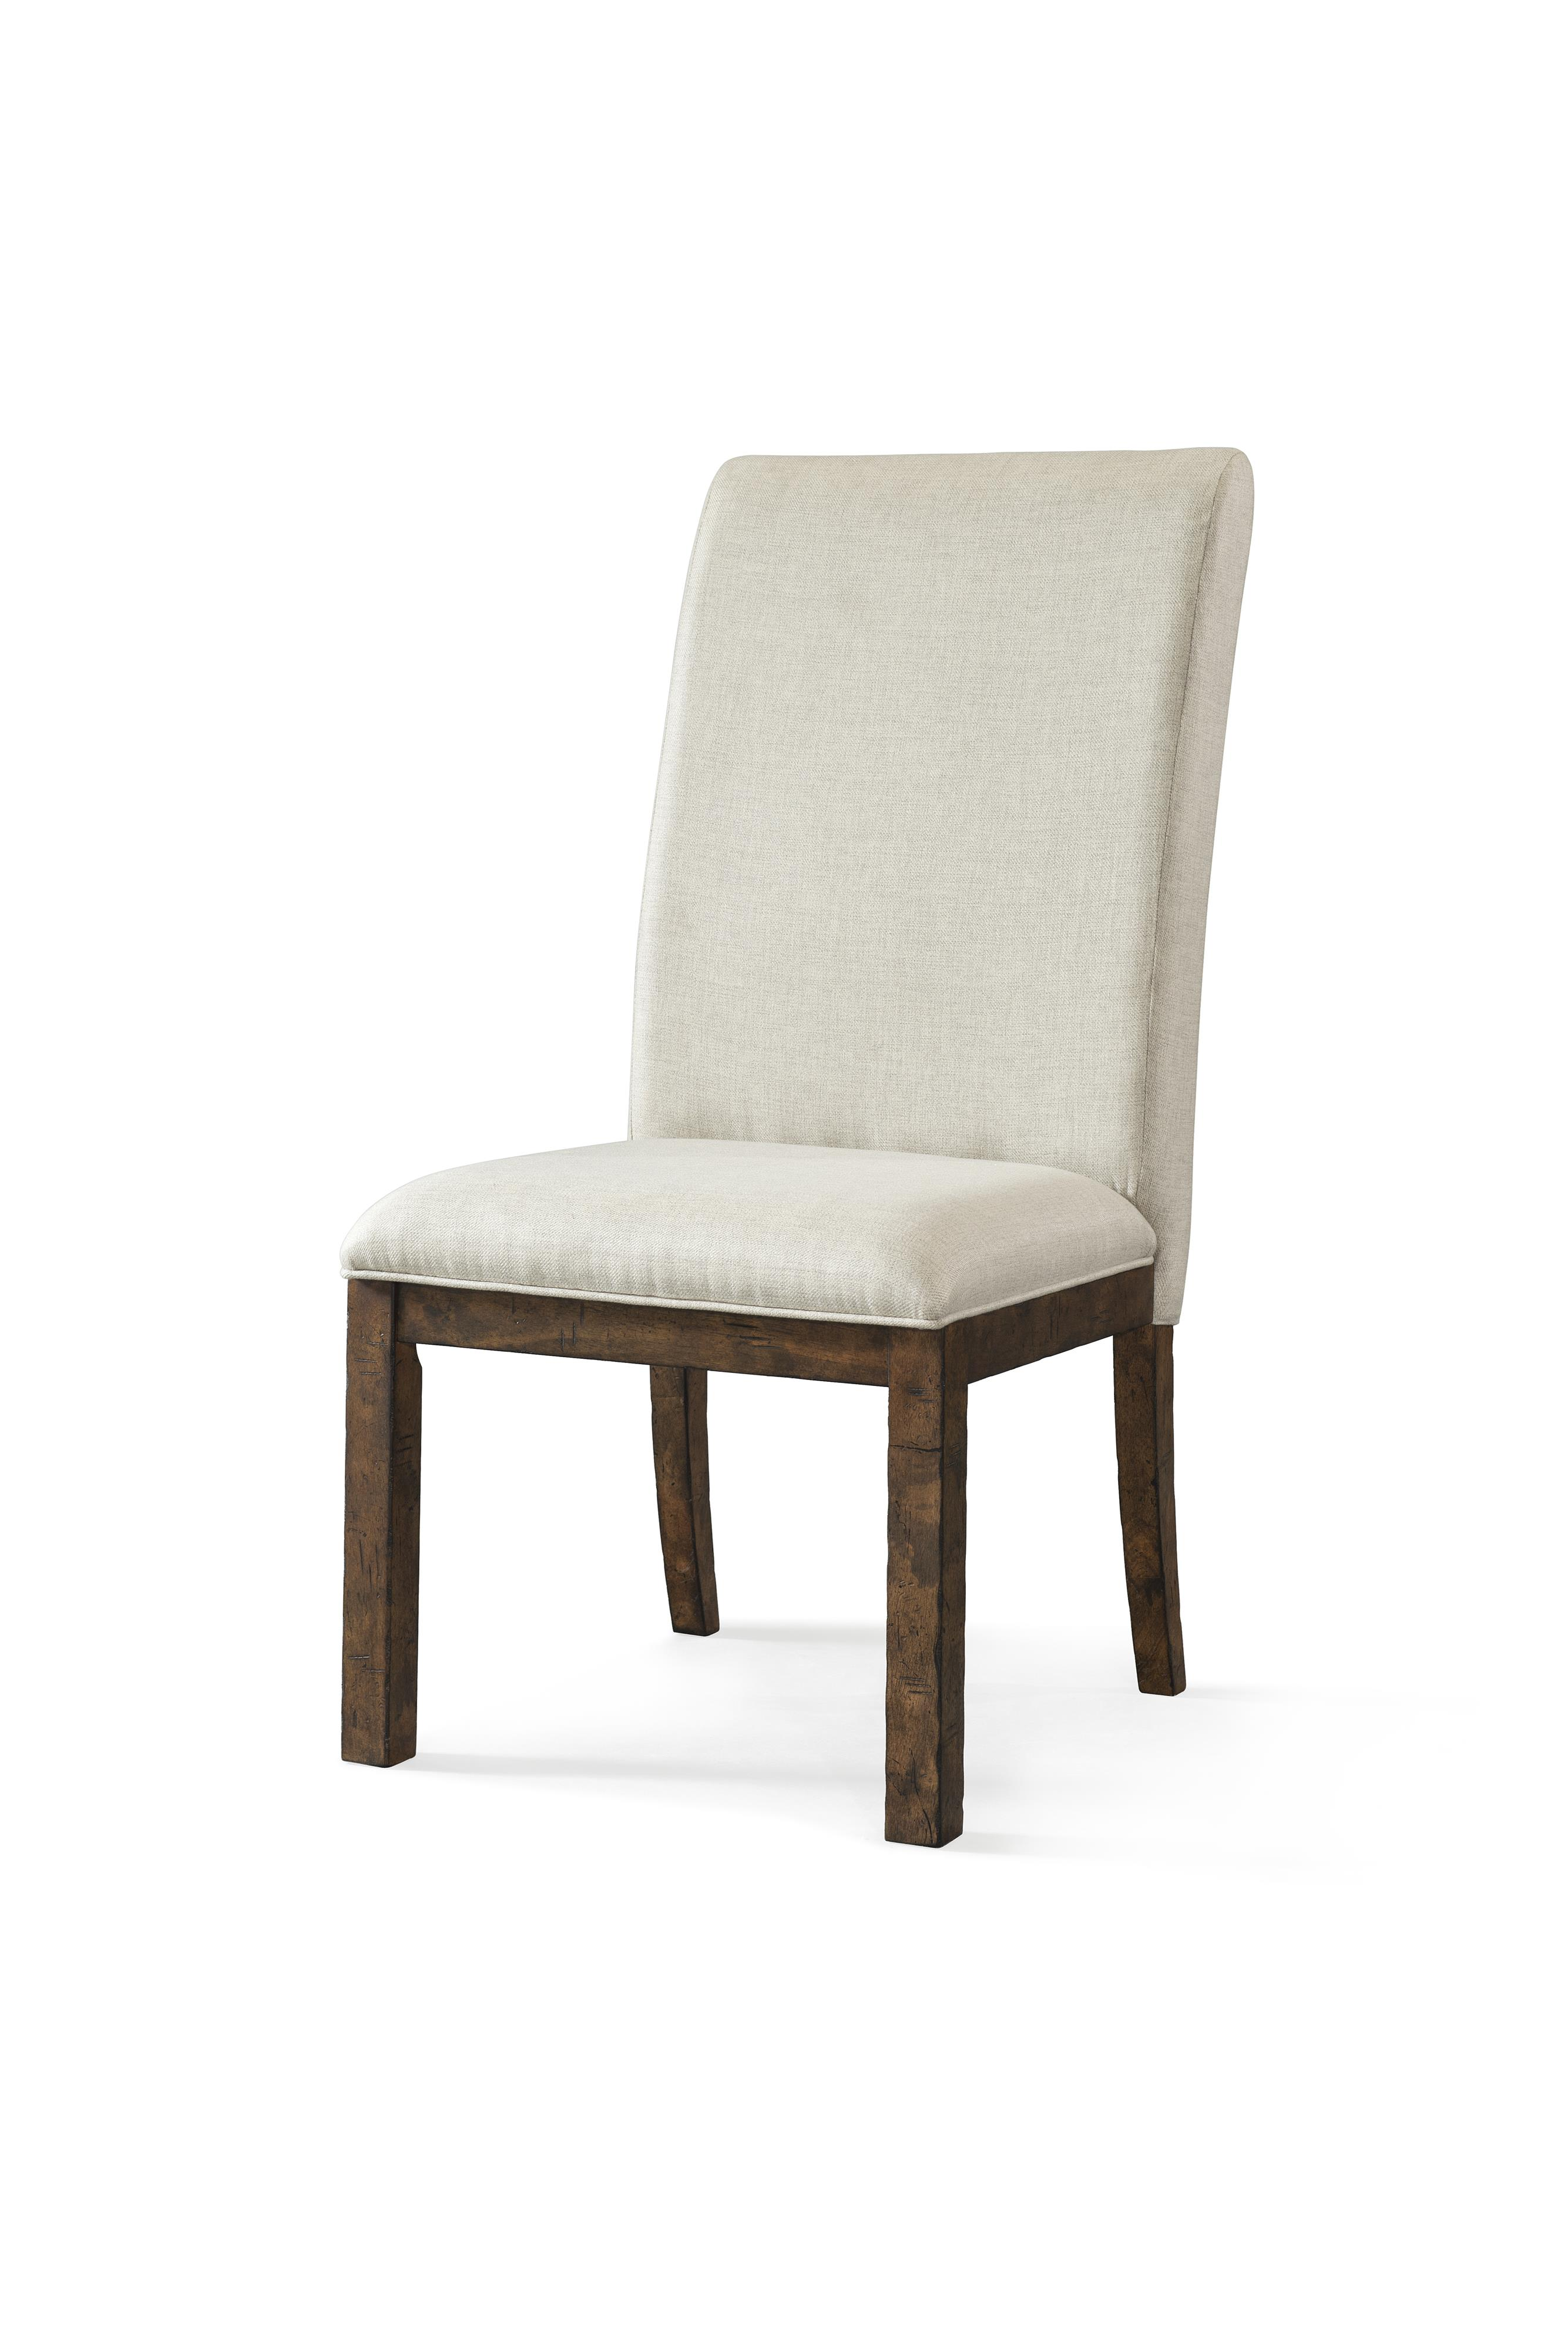 Trisha Yearwood Home Dining Side Chair by Klaussner at HomeWorld Furniture